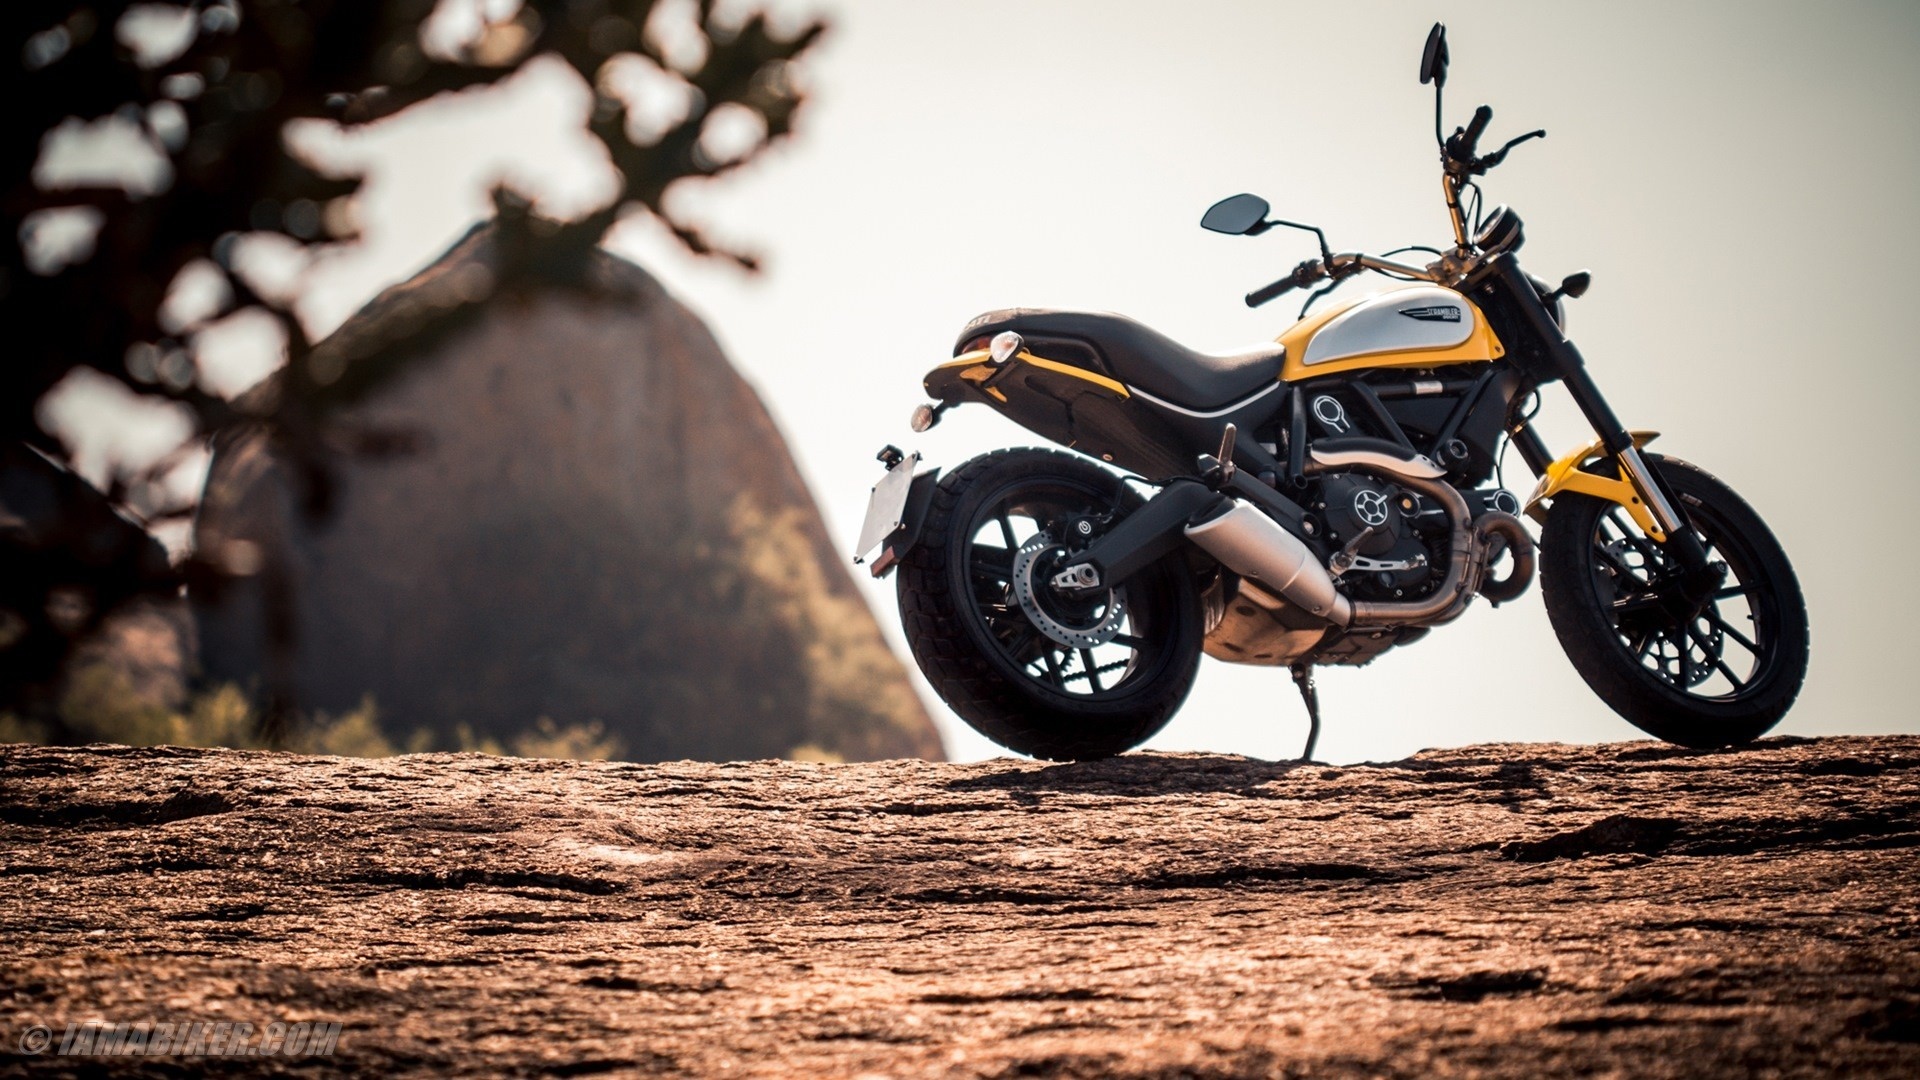 ducati scrambler wallpapers (80+ images)